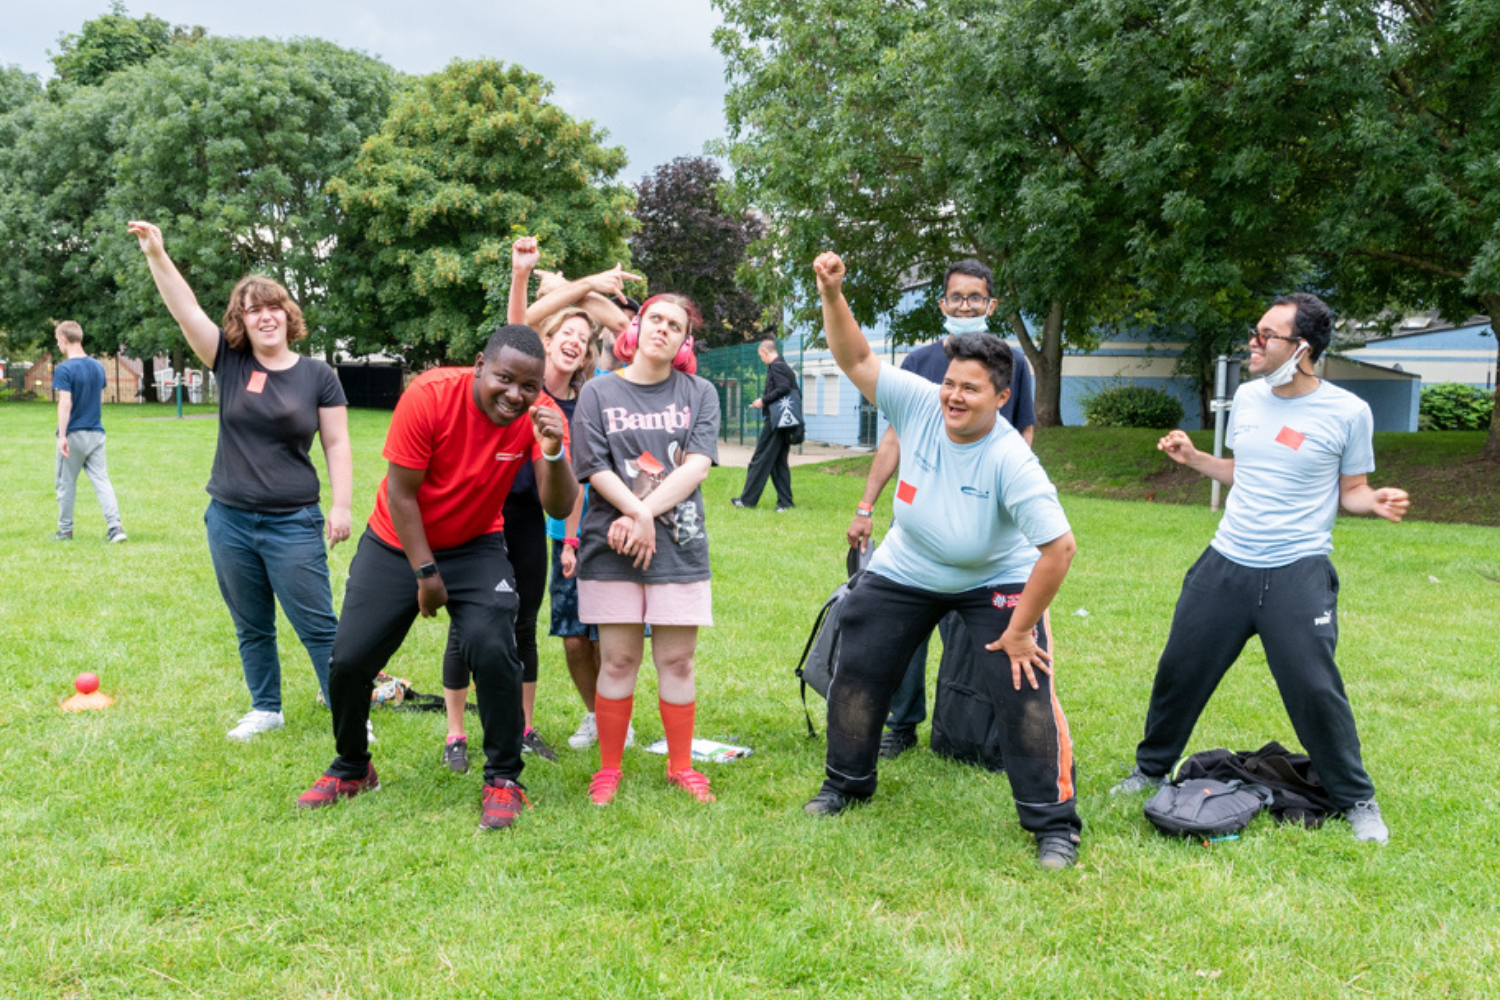 Volunteers and members posing in a group at our Wandsworth Paralympics event